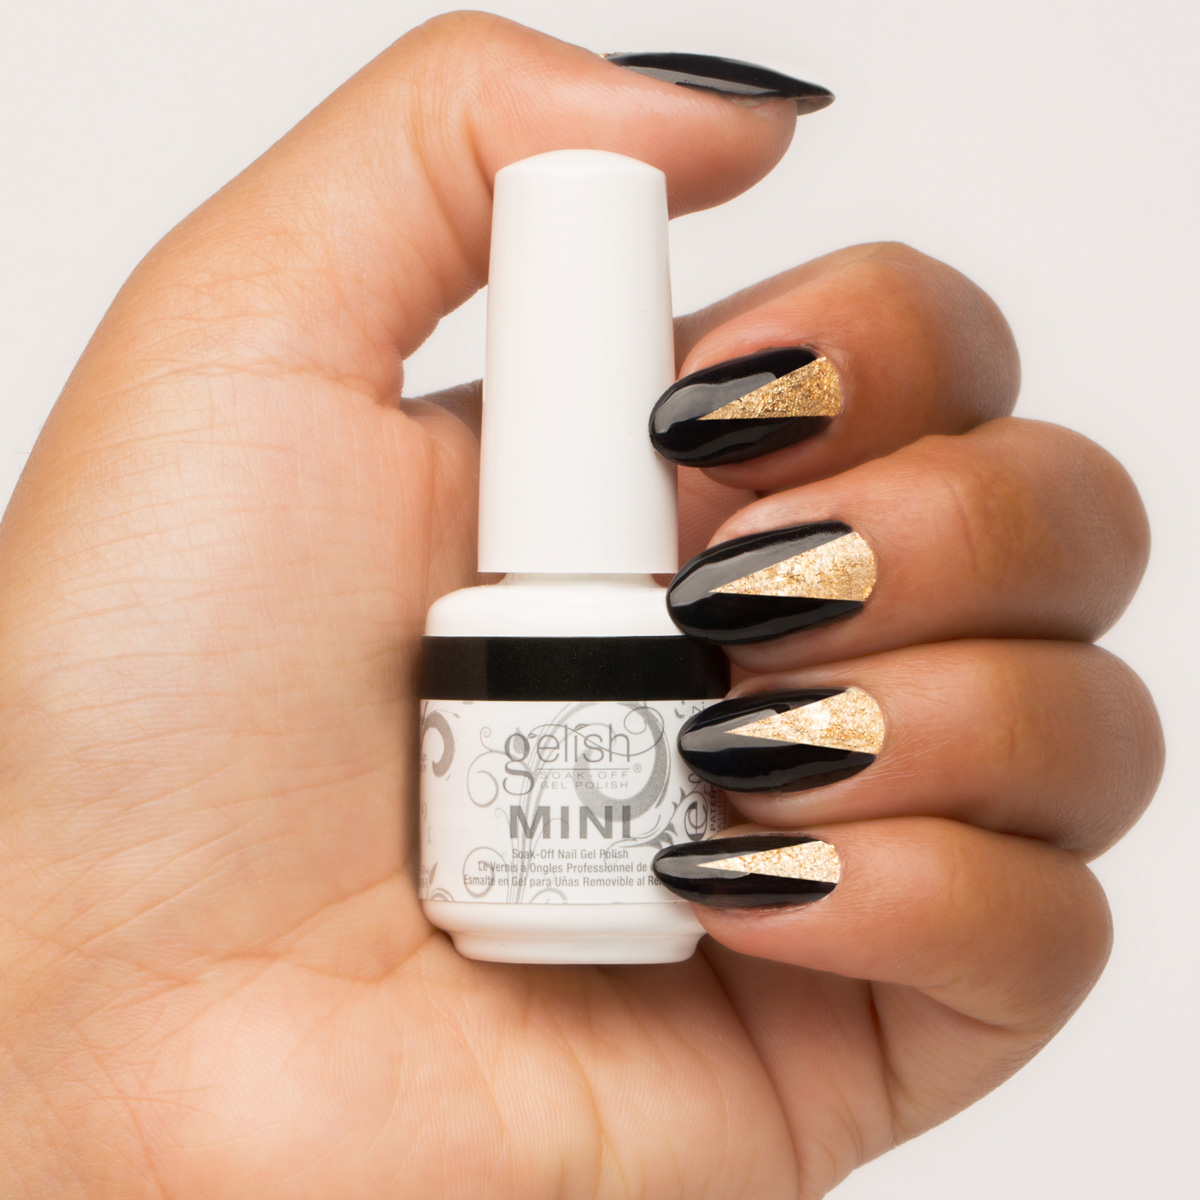 Nail Art Tutorial: Beyoncé-Inspired Manicure